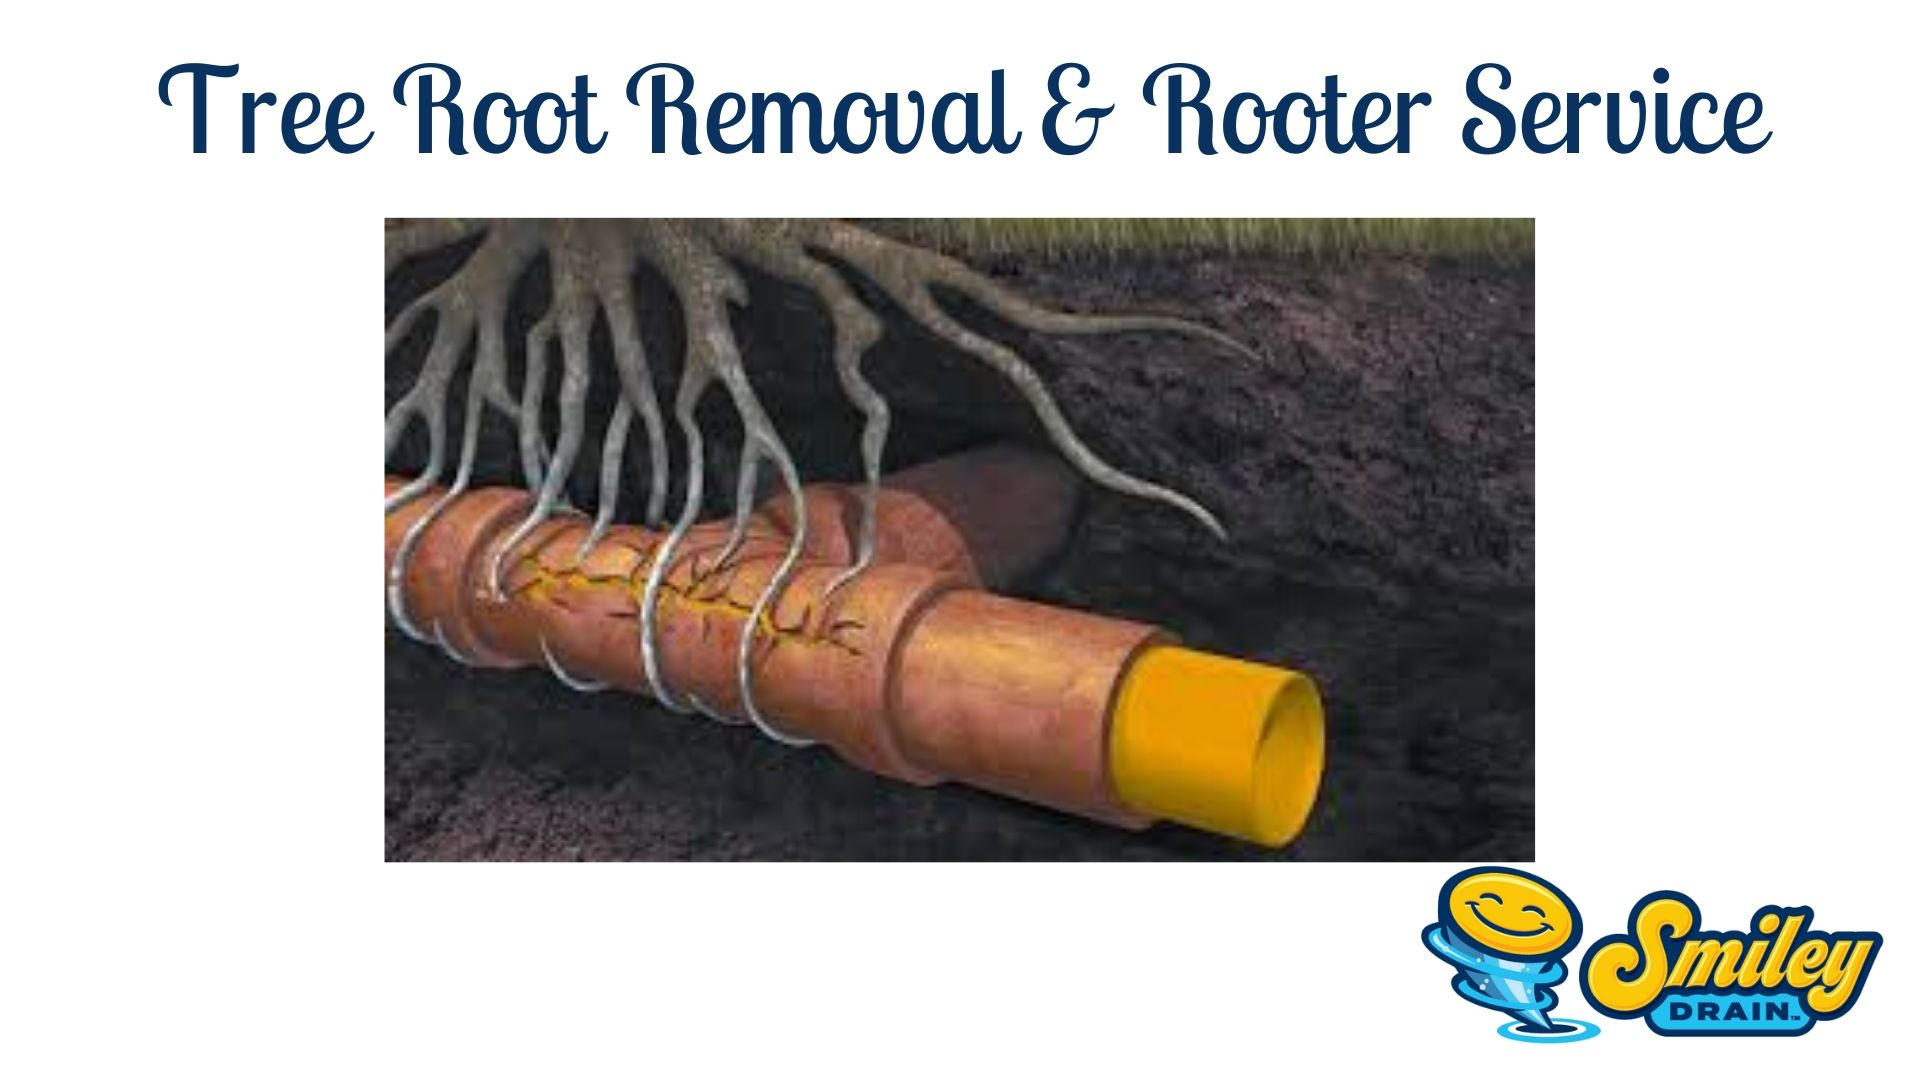 tree root removal and rooter service